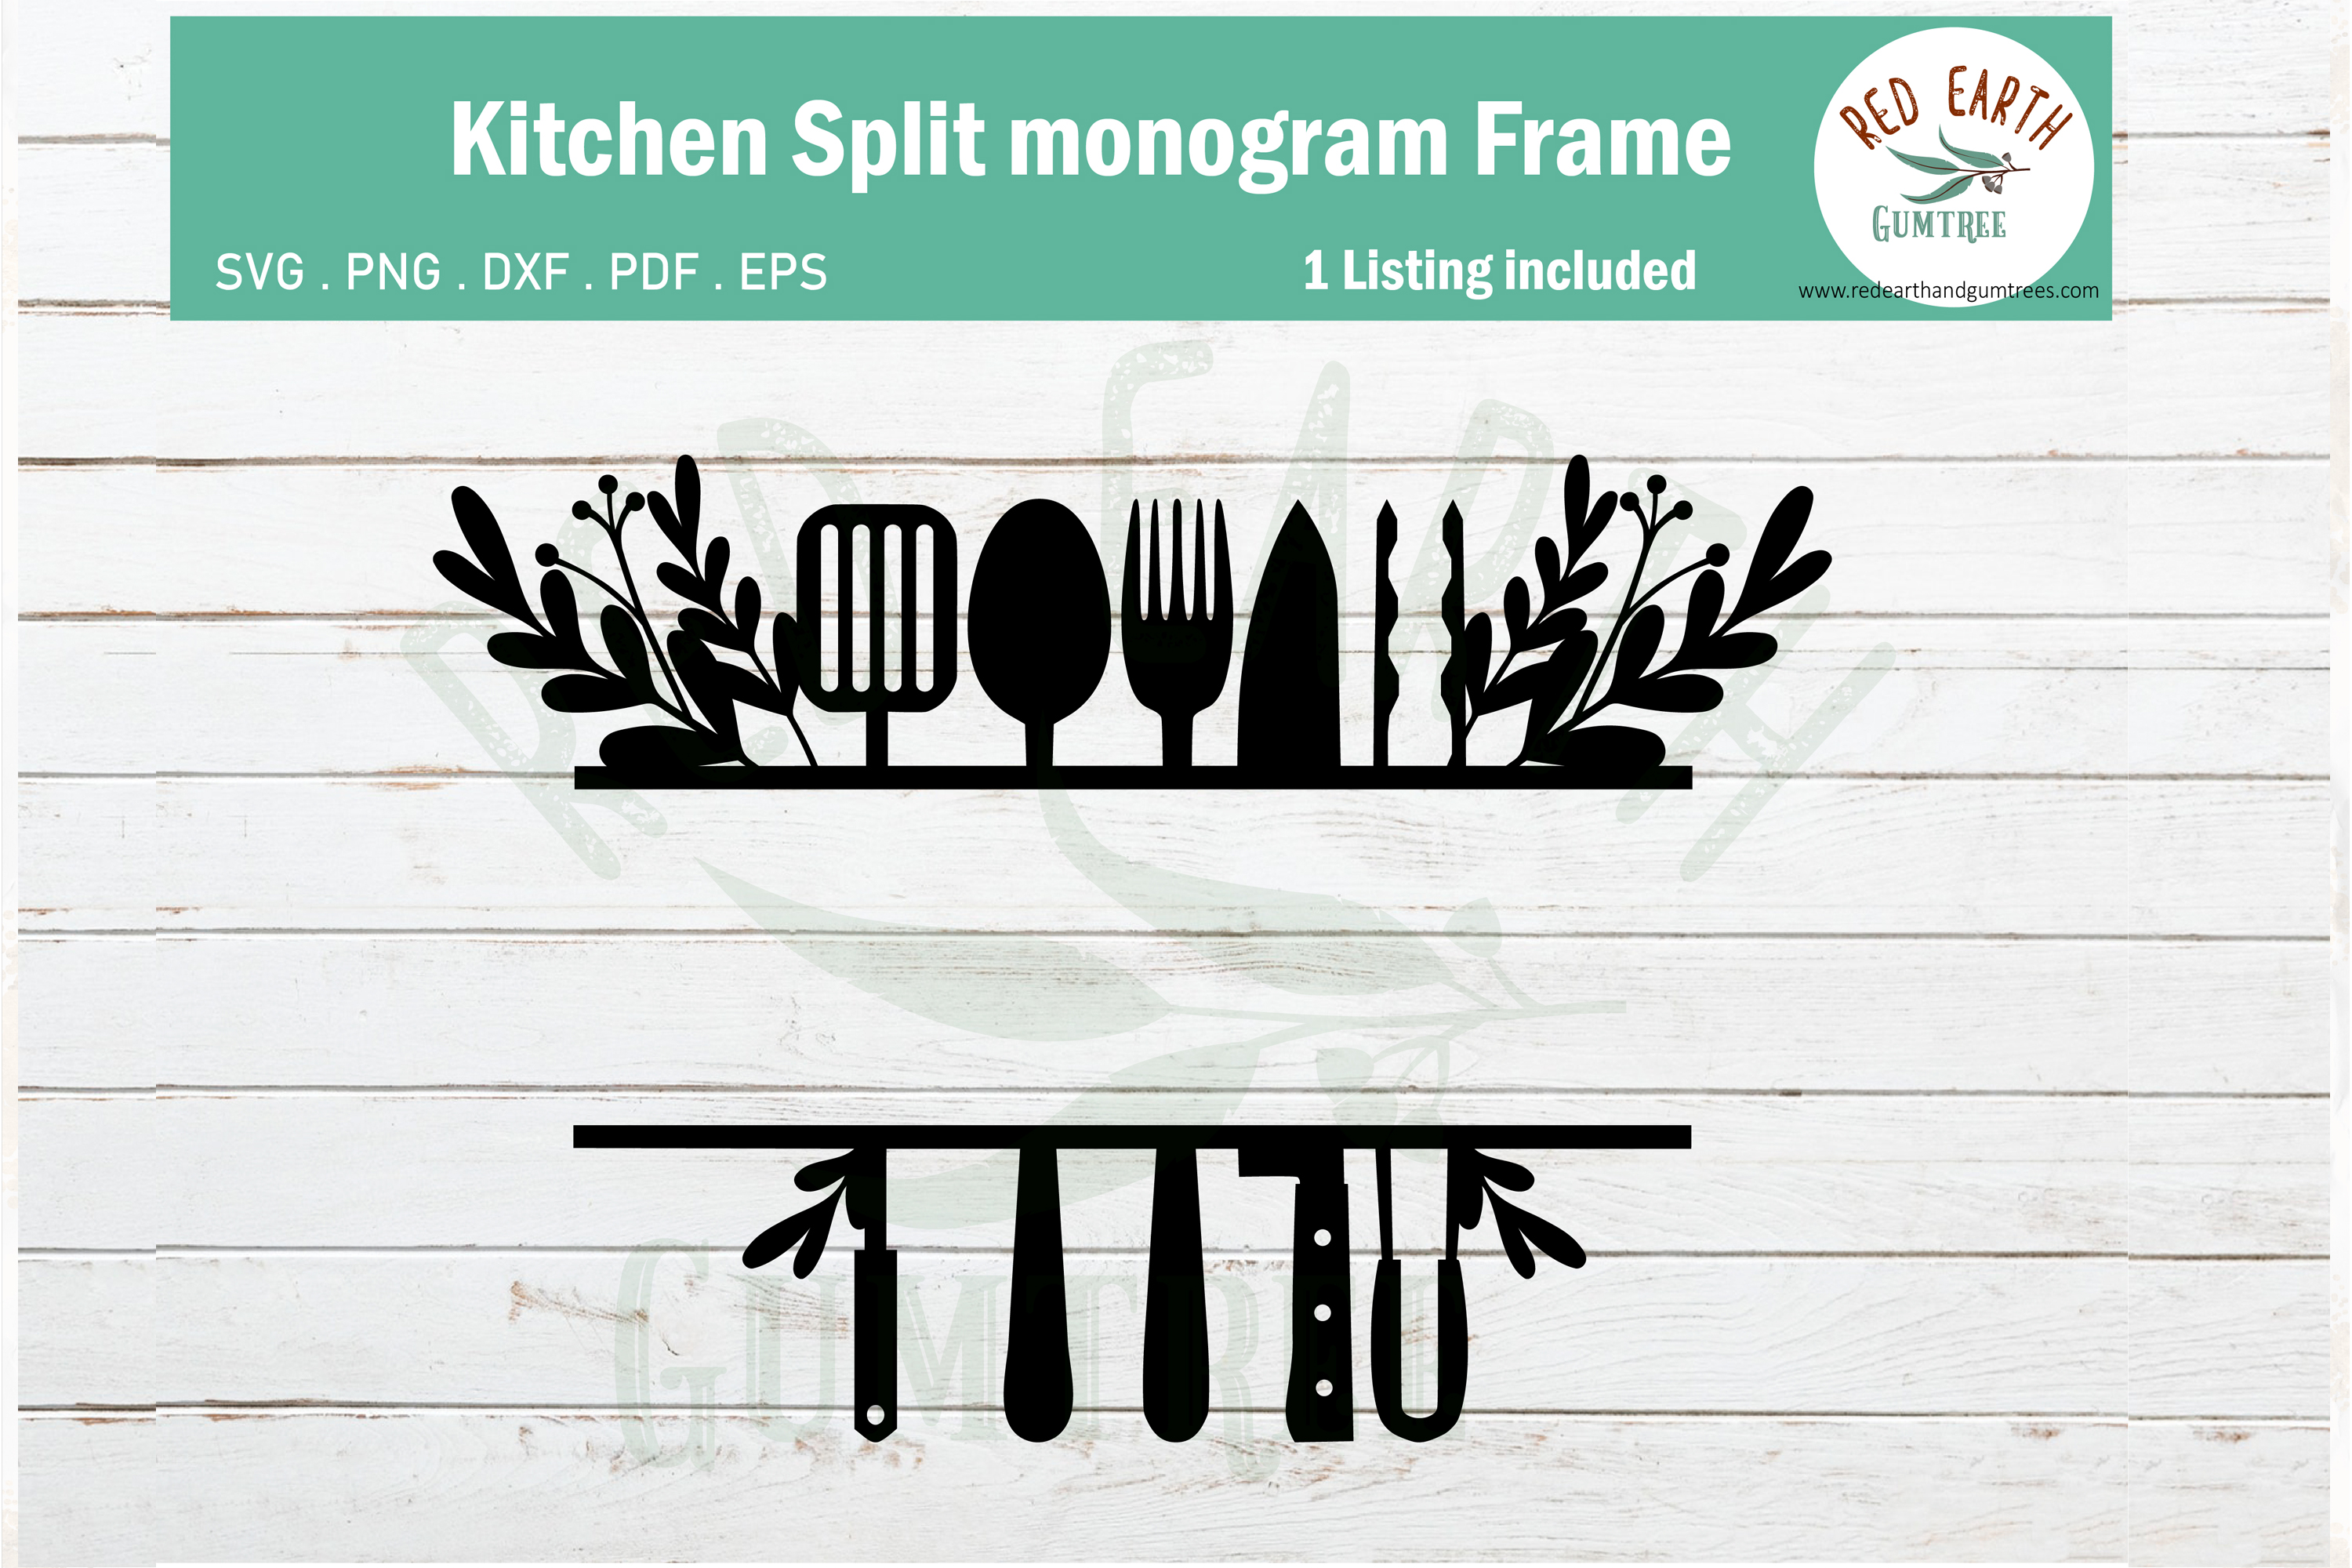 Floral Kitchen Split Monogram Frame Graphic By Redearth And